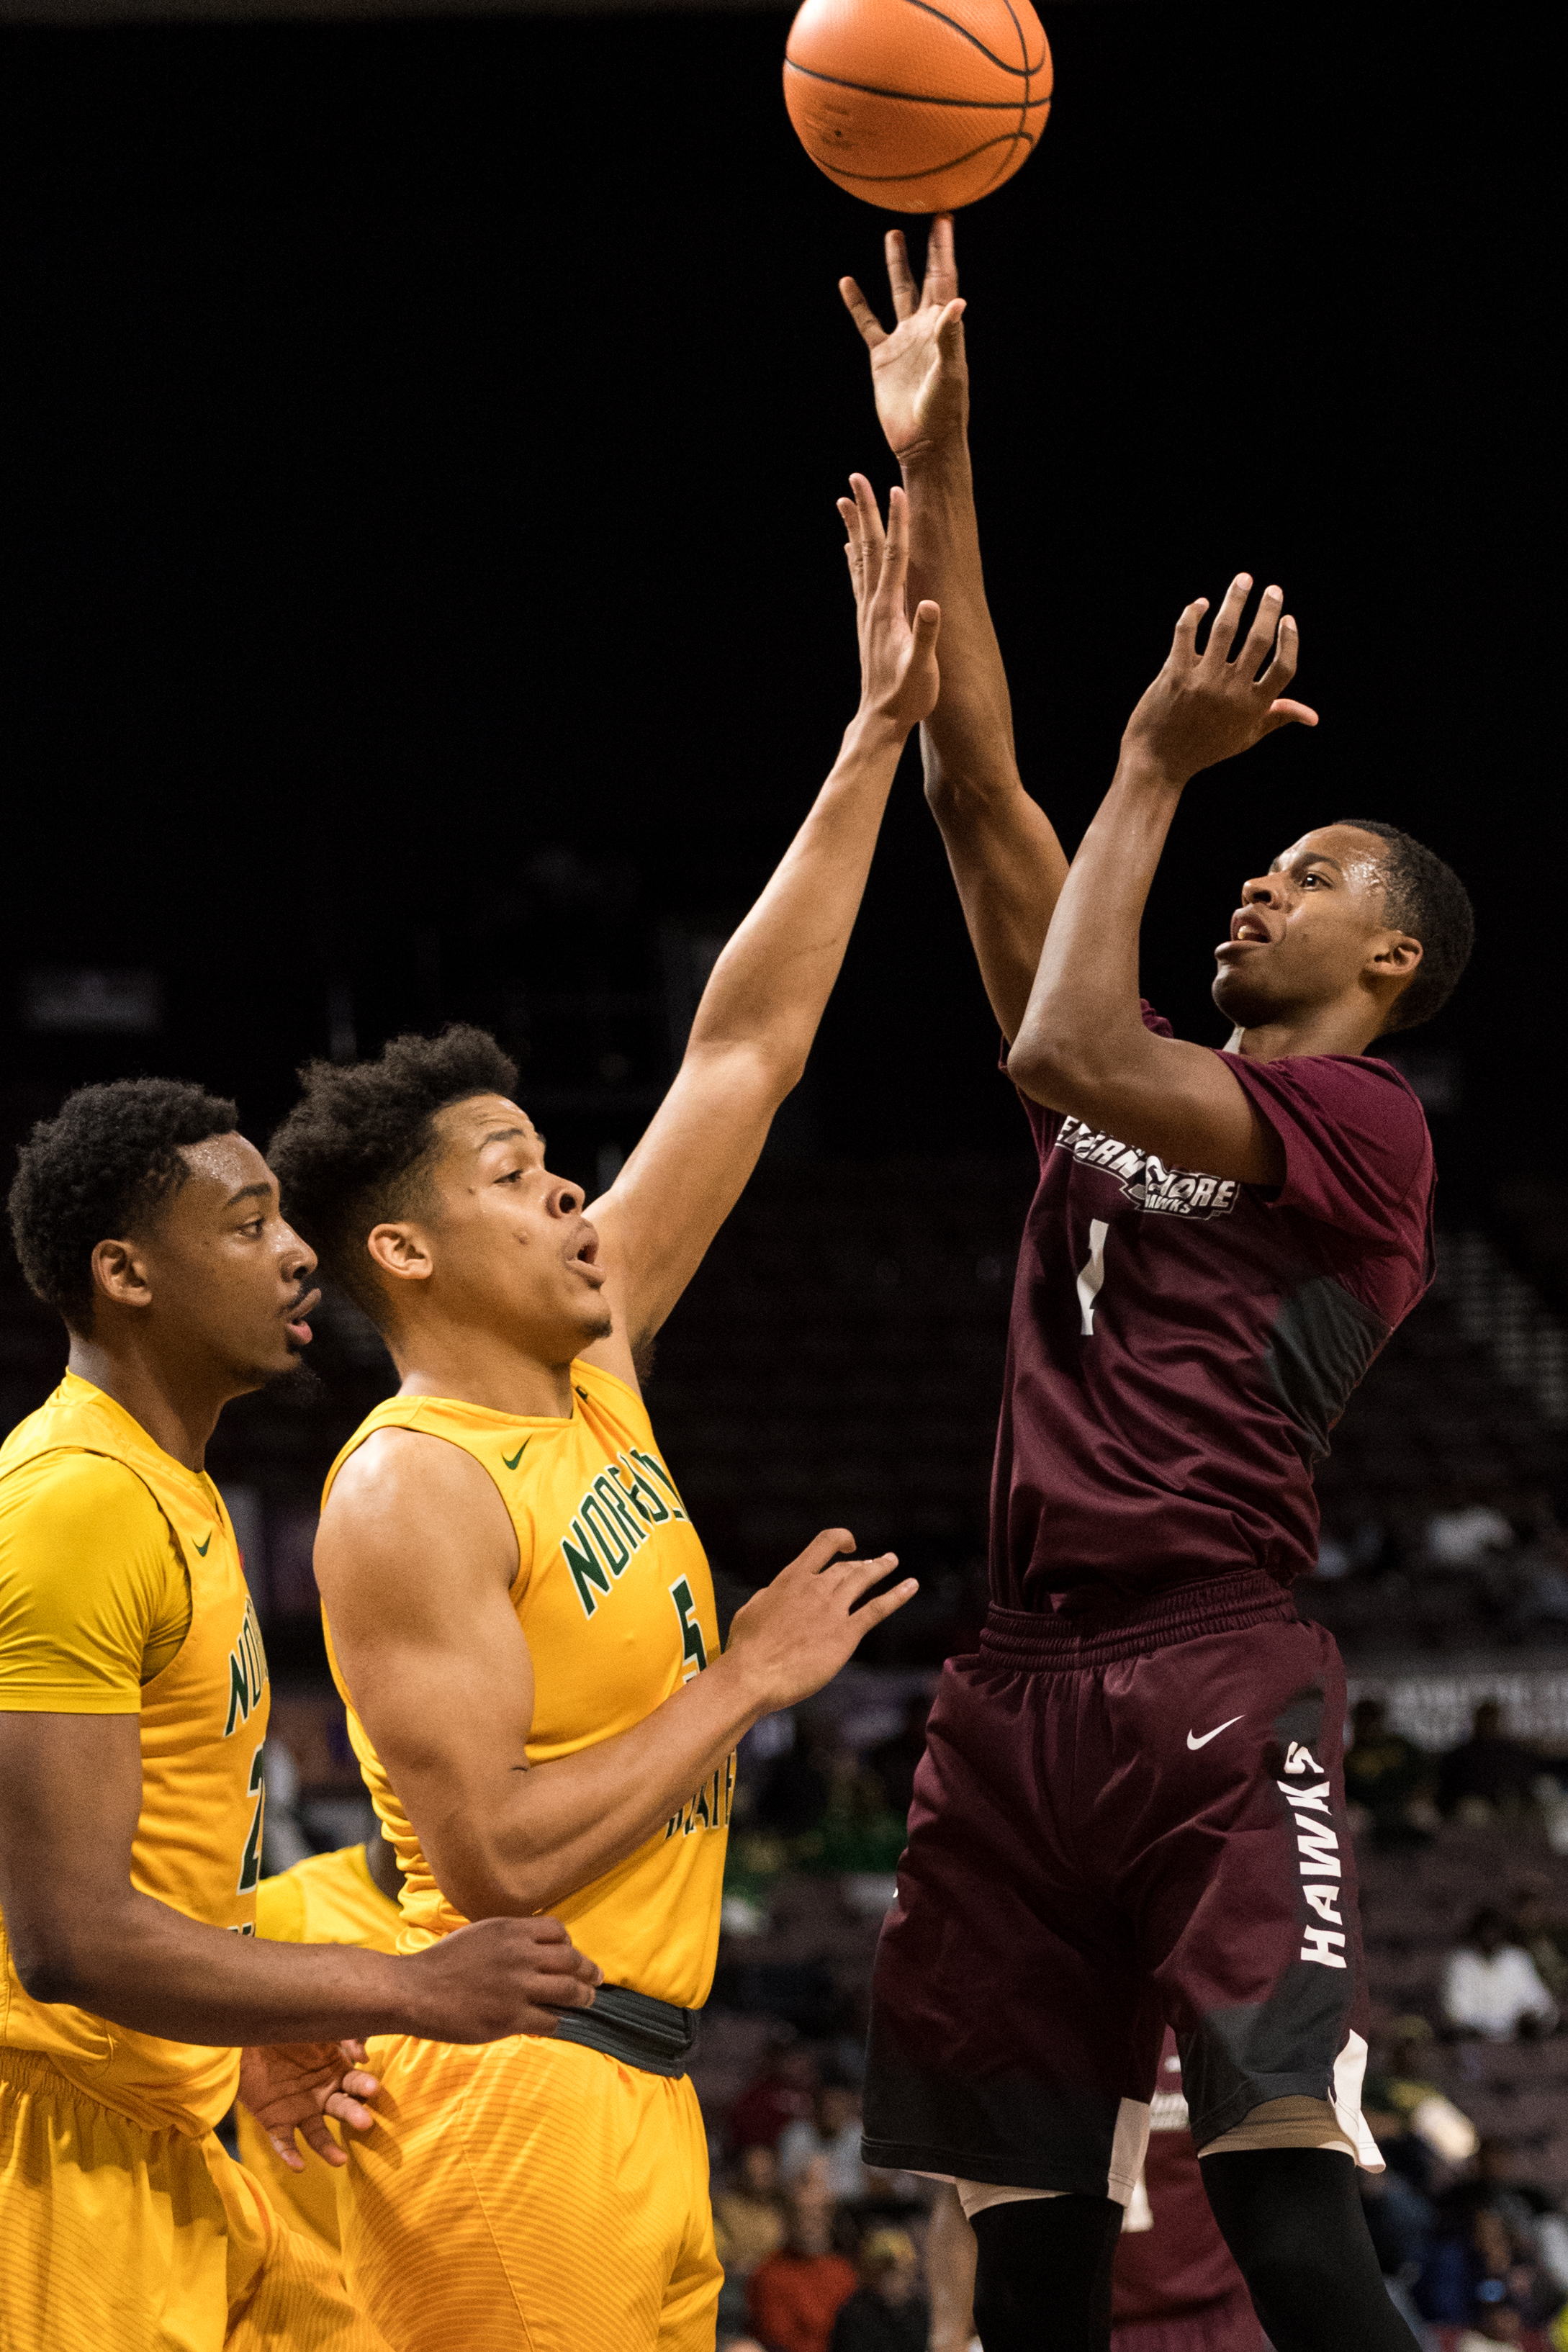 Maryland-Eastern Shore Hawks forward Miryne Thomas (1)  goes up for a shot against Norfolk State Spartans center Bryan Gellineau (5) during the Monday, March 5, 2018 game held at Norfolk Scope Arena.